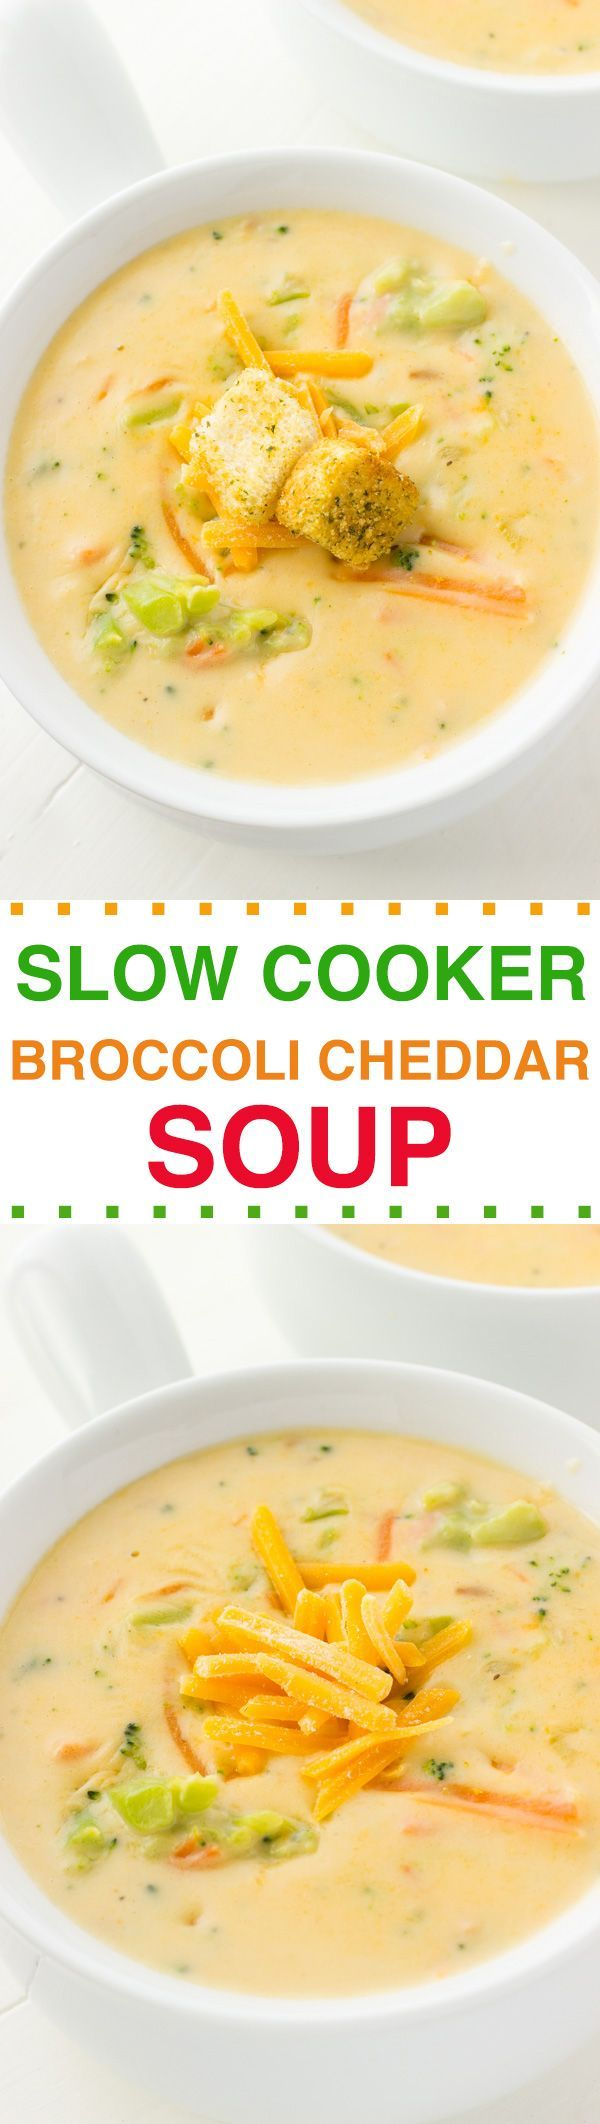 Slow Cooker Broccoli Cheddar Soup--easy soup recipe...even better then panera bread. #crockpotrecipes #slowcooker  #soup #broccoli #dinnertime #lunch #recipes #cheese